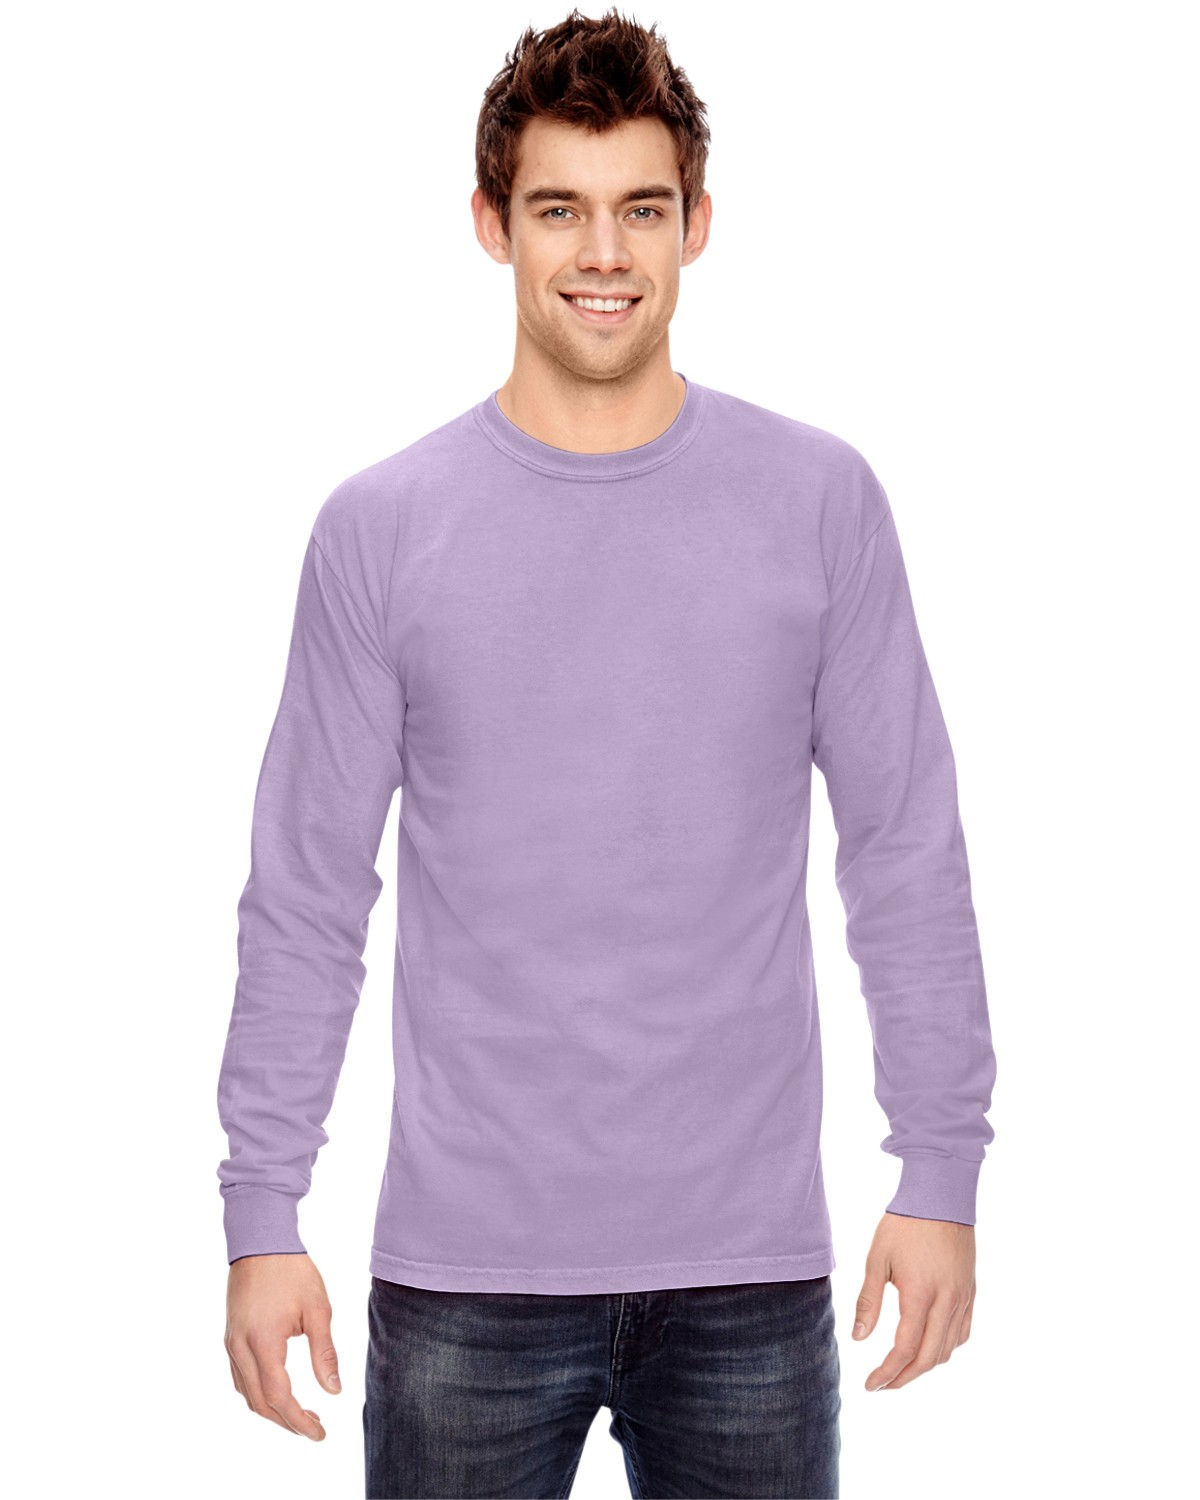 C6014 Comfort Colors ORCHID